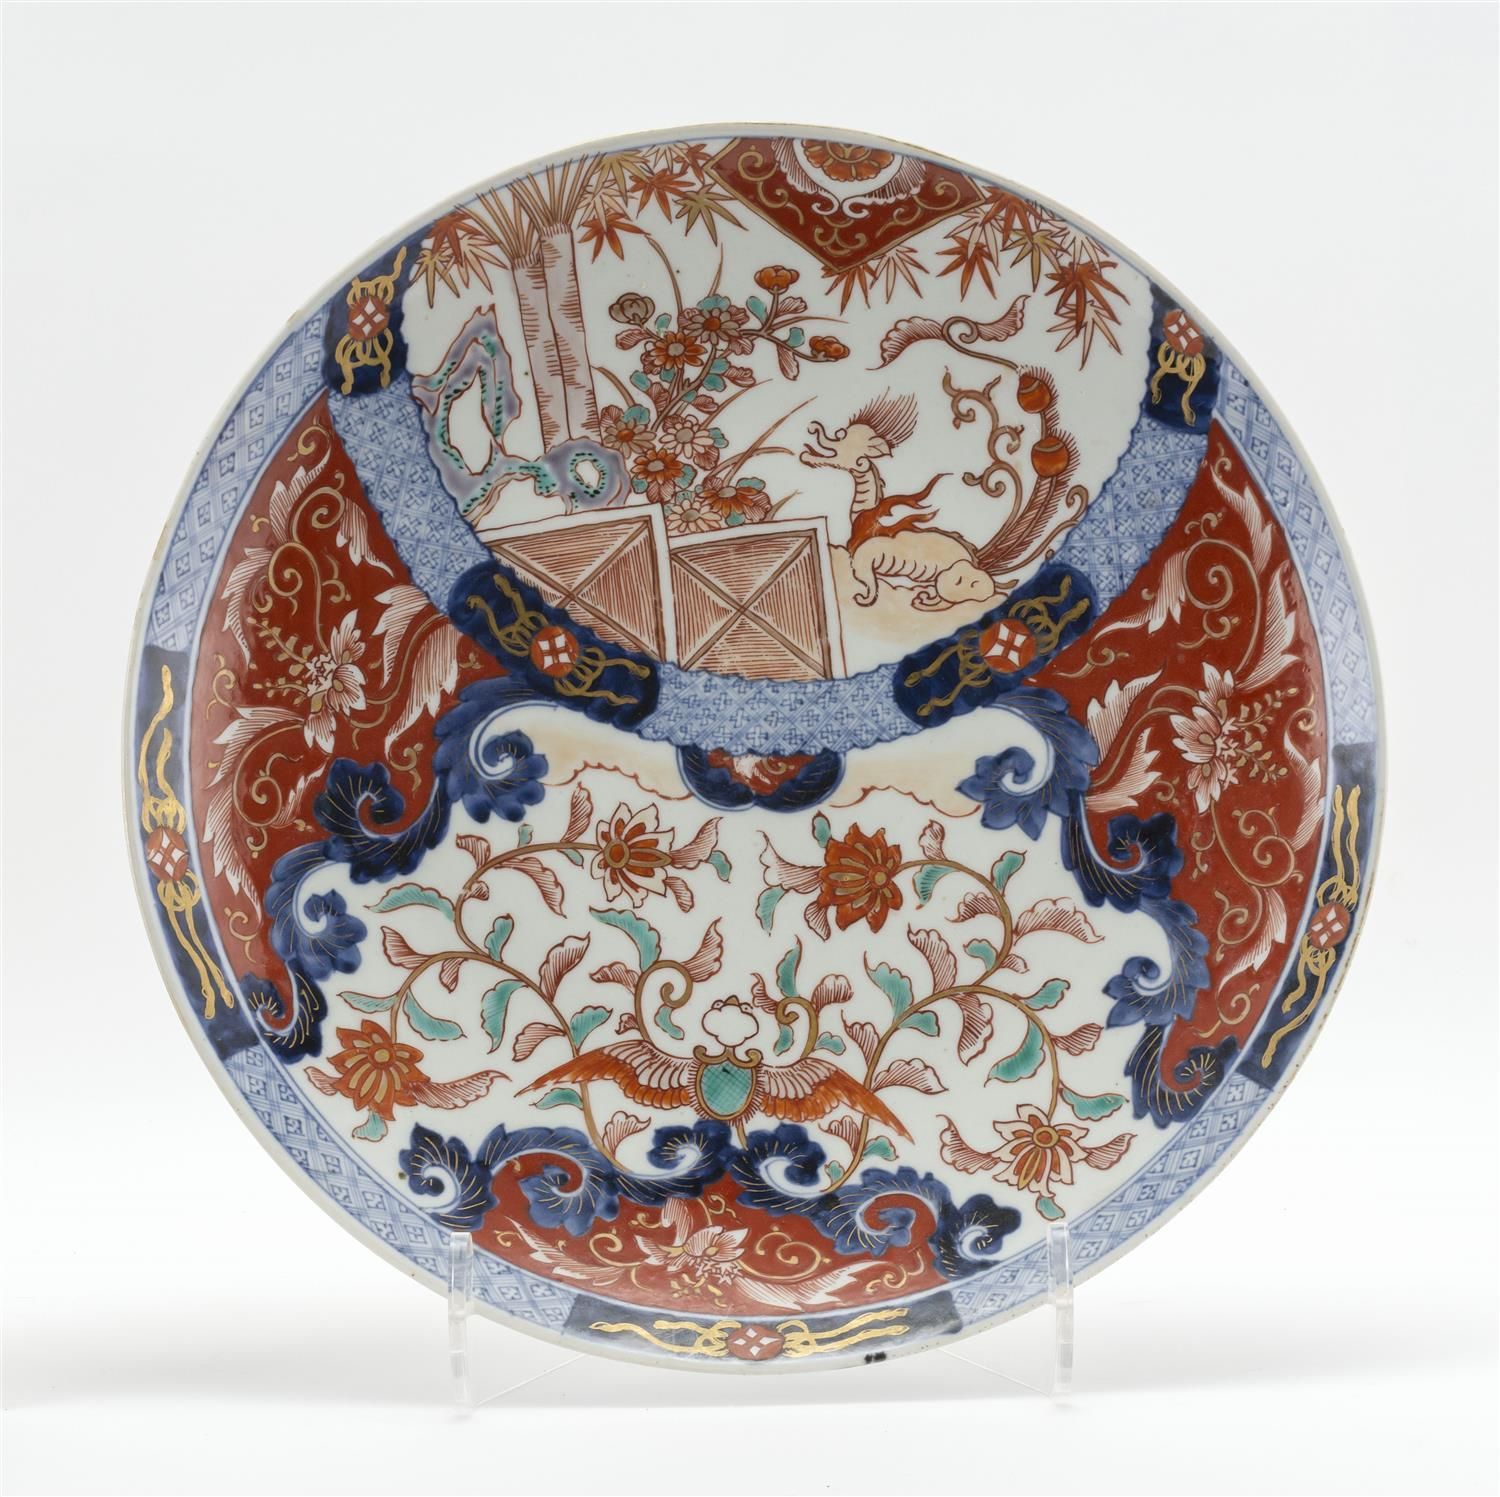 JAPANESE IMARI PORCELAIN CHARGER With decoration of a dragon in a garden landscape, and flowers and vines with gilt highlights. Diam...